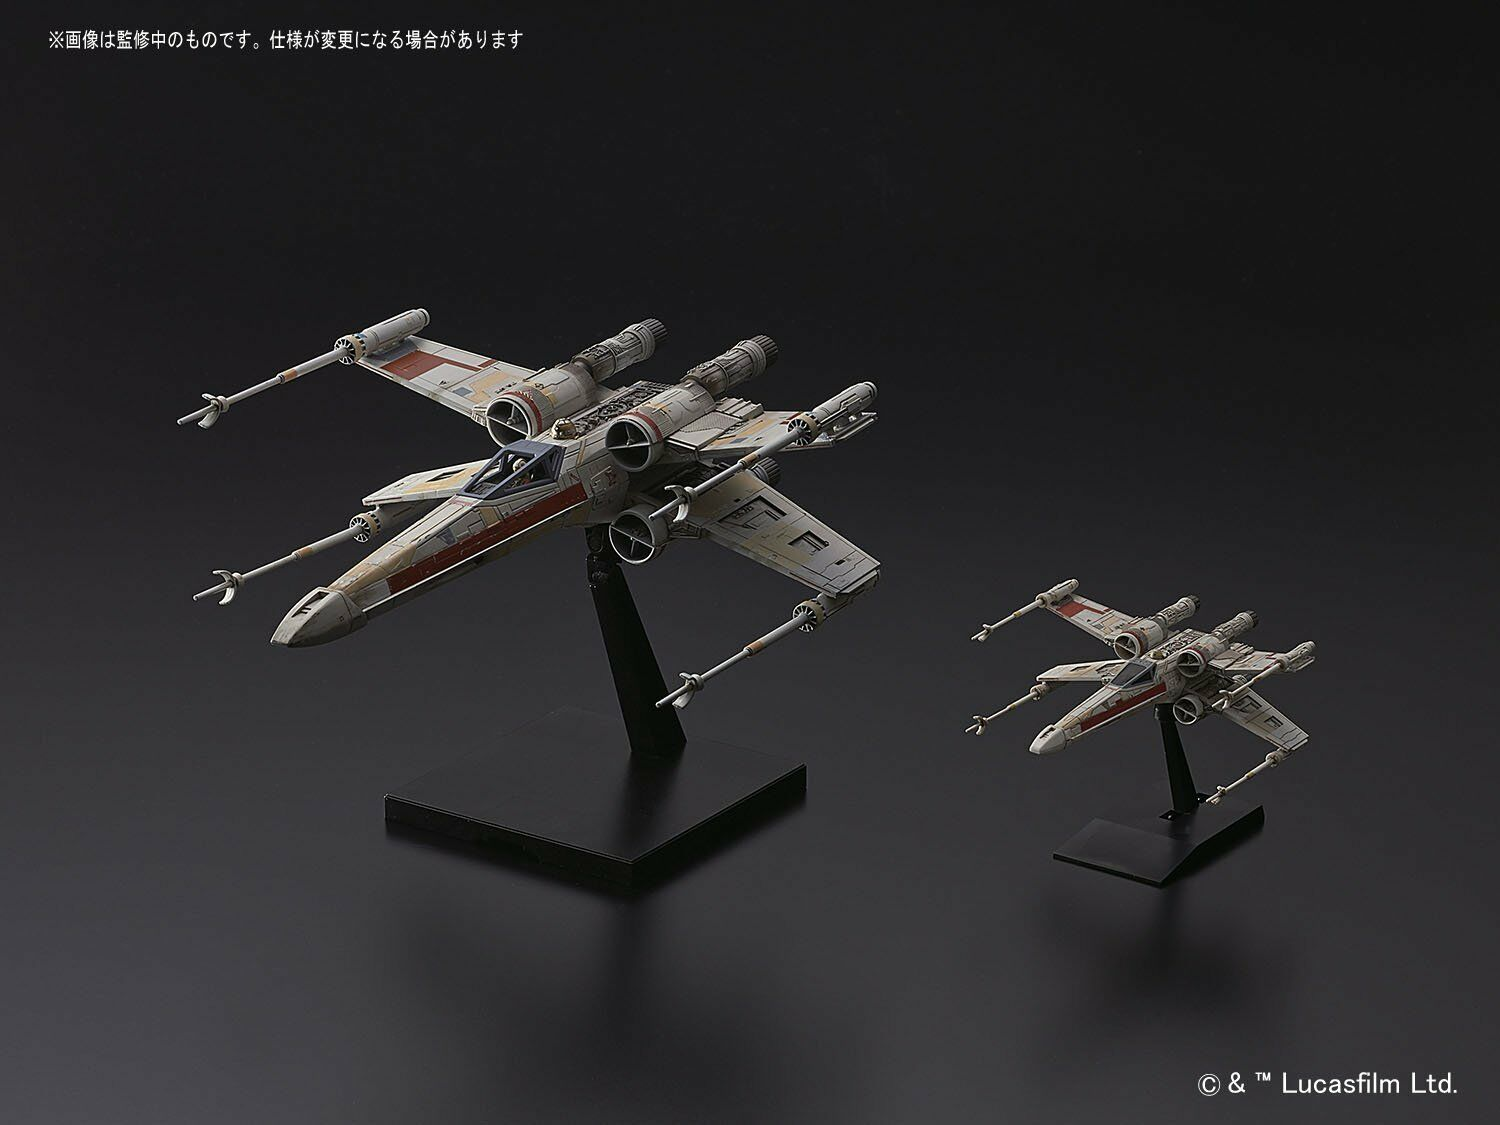 Rogue One ROT squadron Star Wars X-wing Starfigter 1/72 + 1/144 two model set